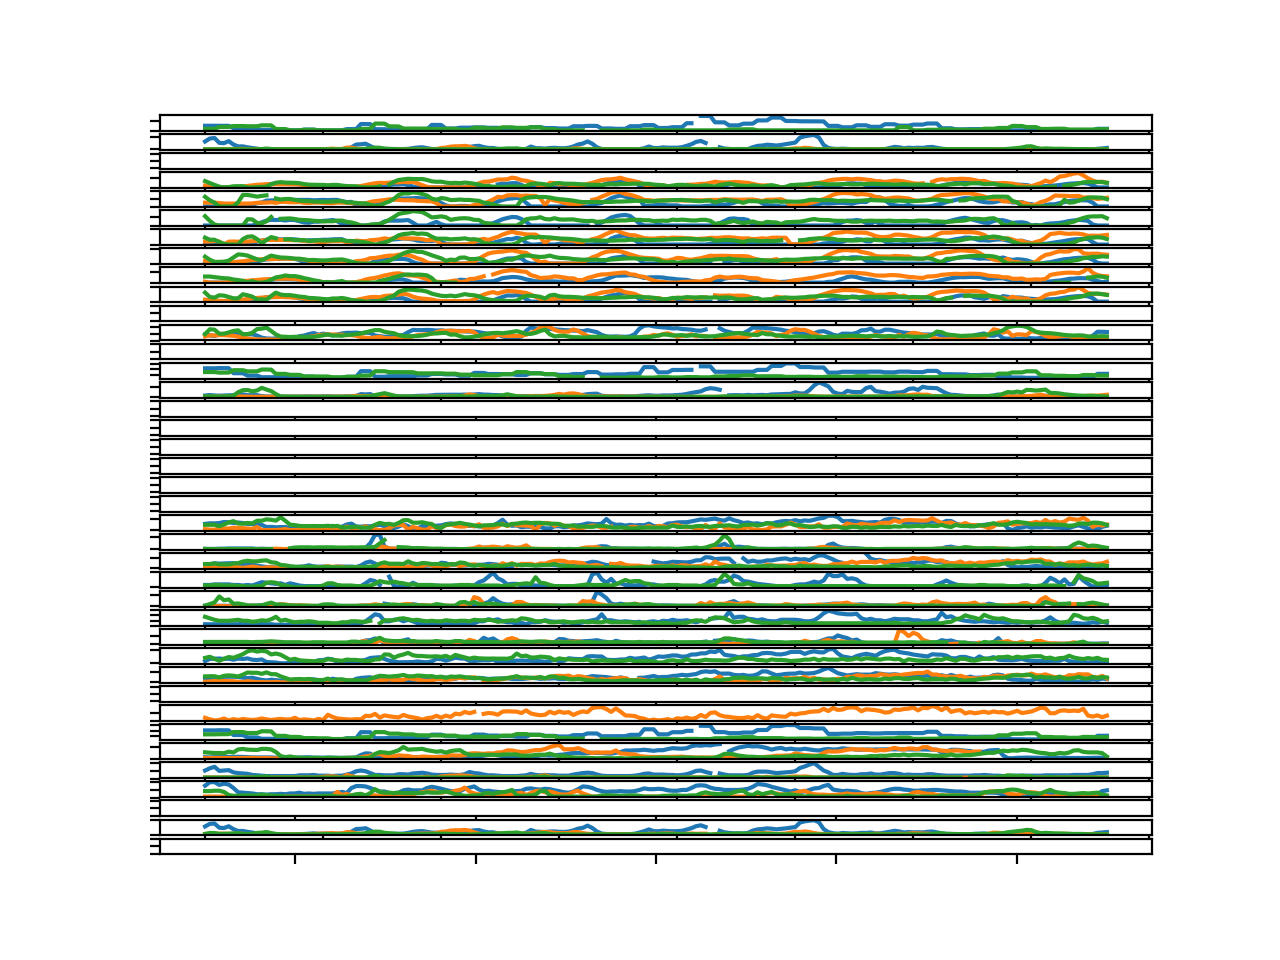 Parallel Time Series Line Plots For All Target Variables for 3 Chunks